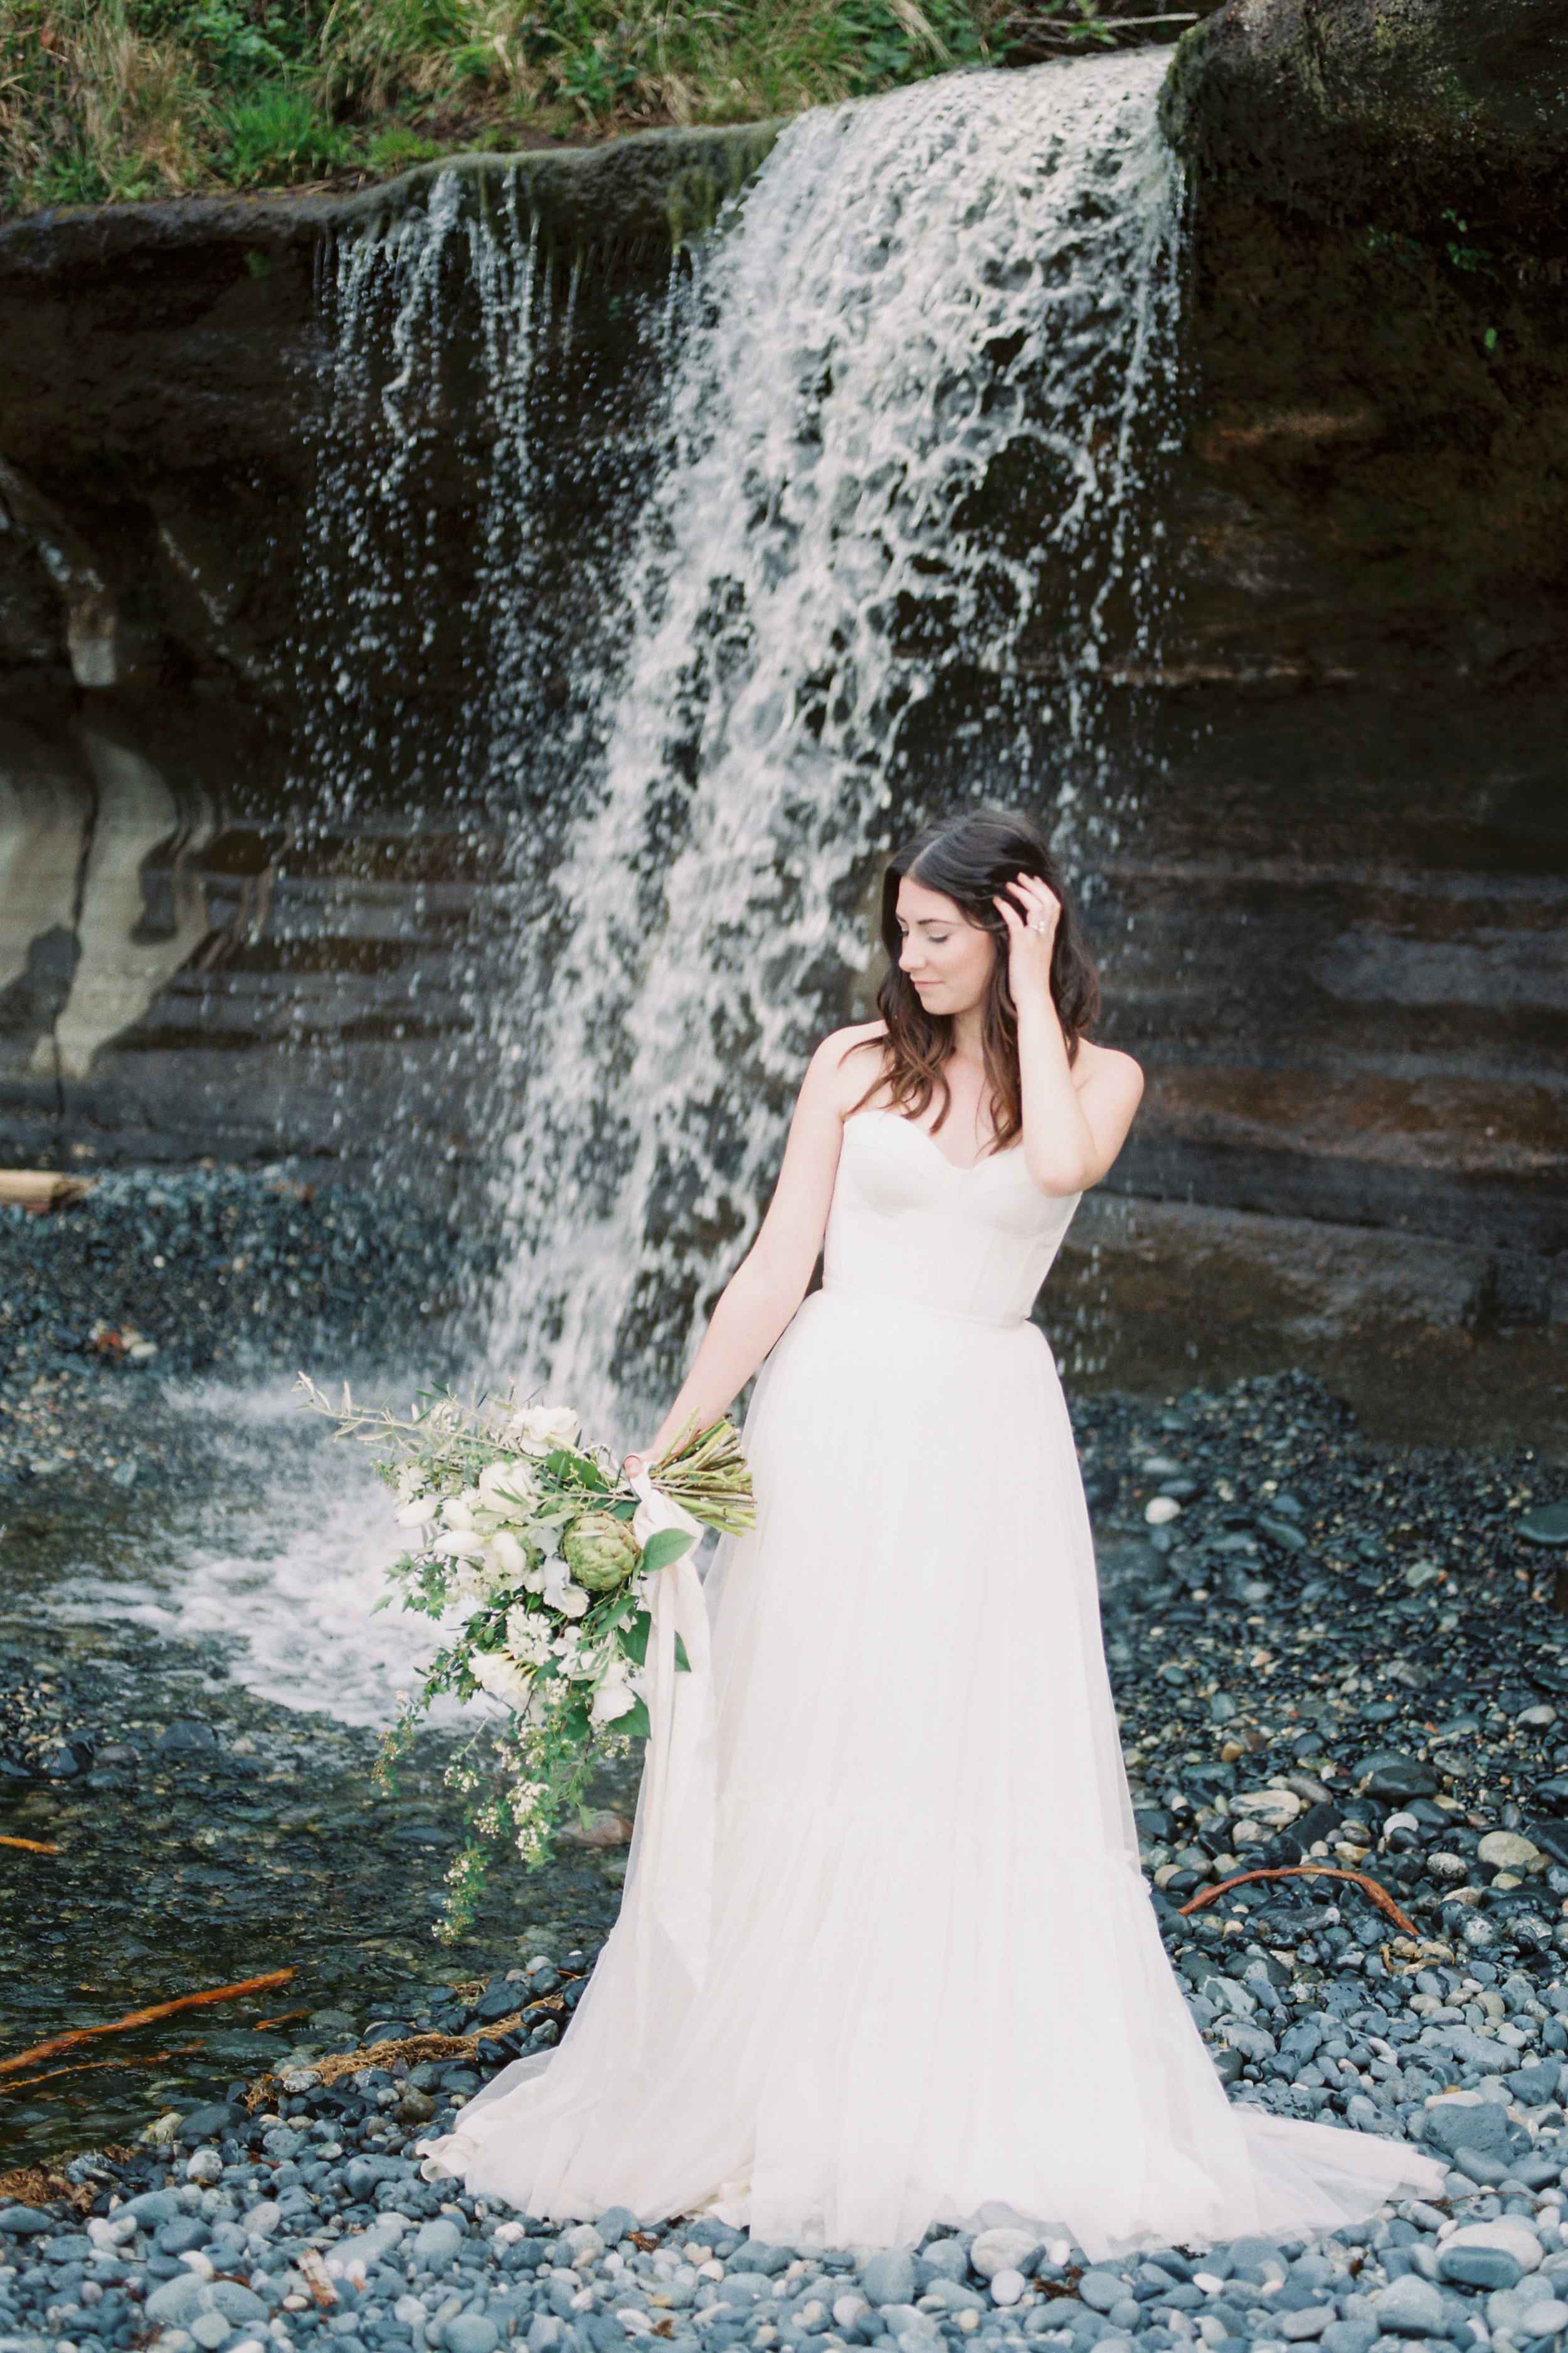 Bridal Portraits - Bohemian Elegance at Sandcut Beach in Sooke, Vancouver Island